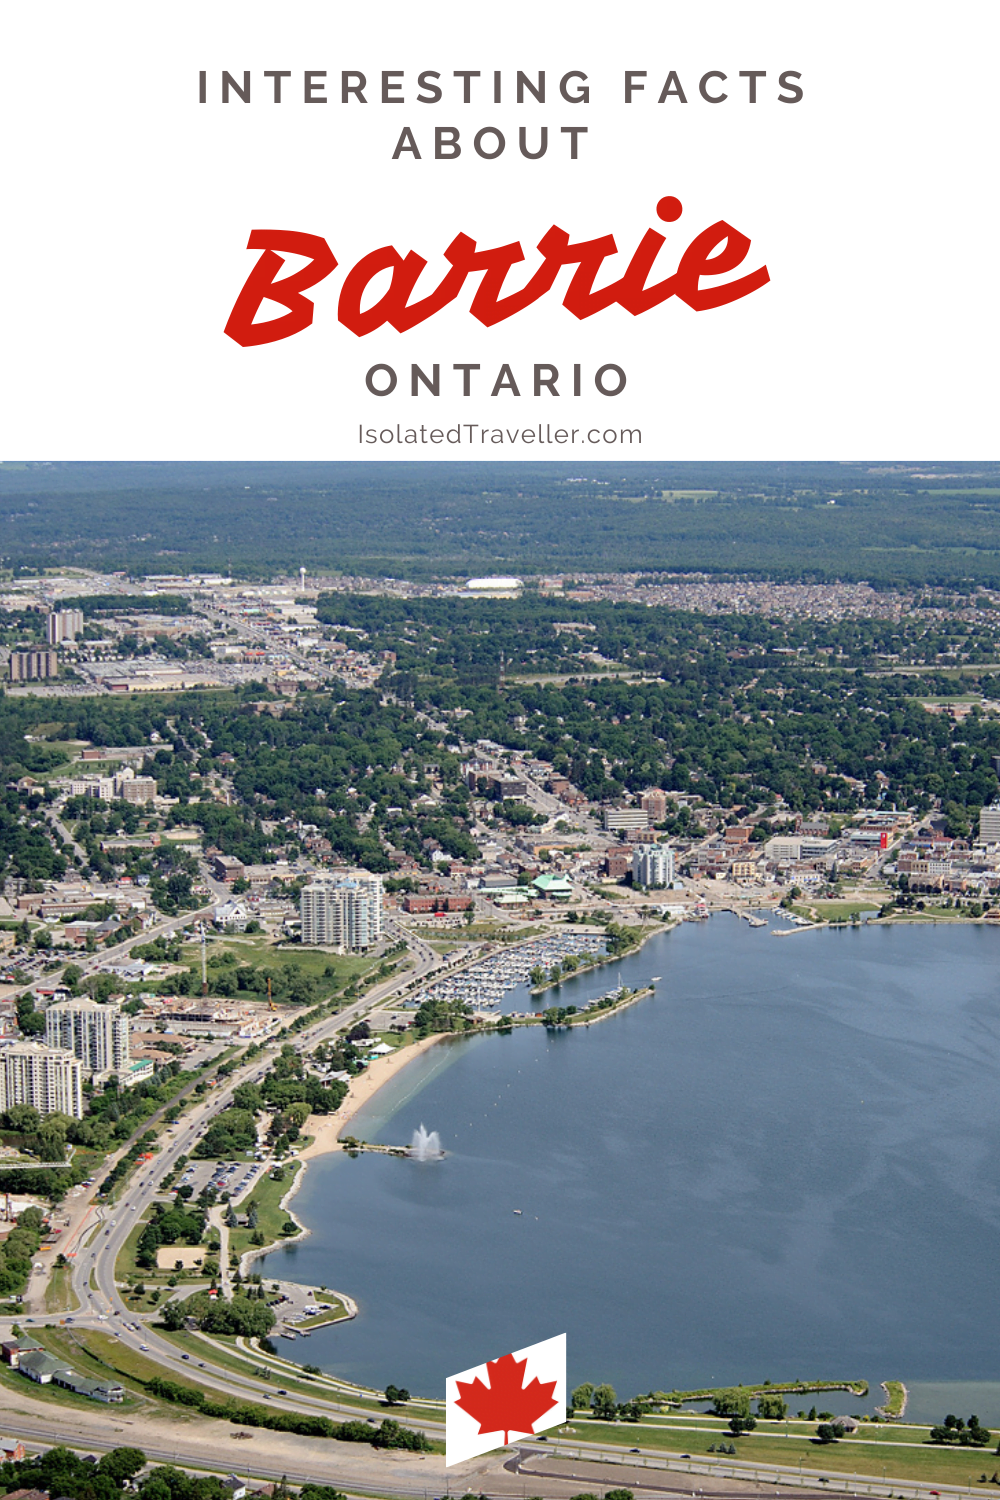 Facts About Barrie